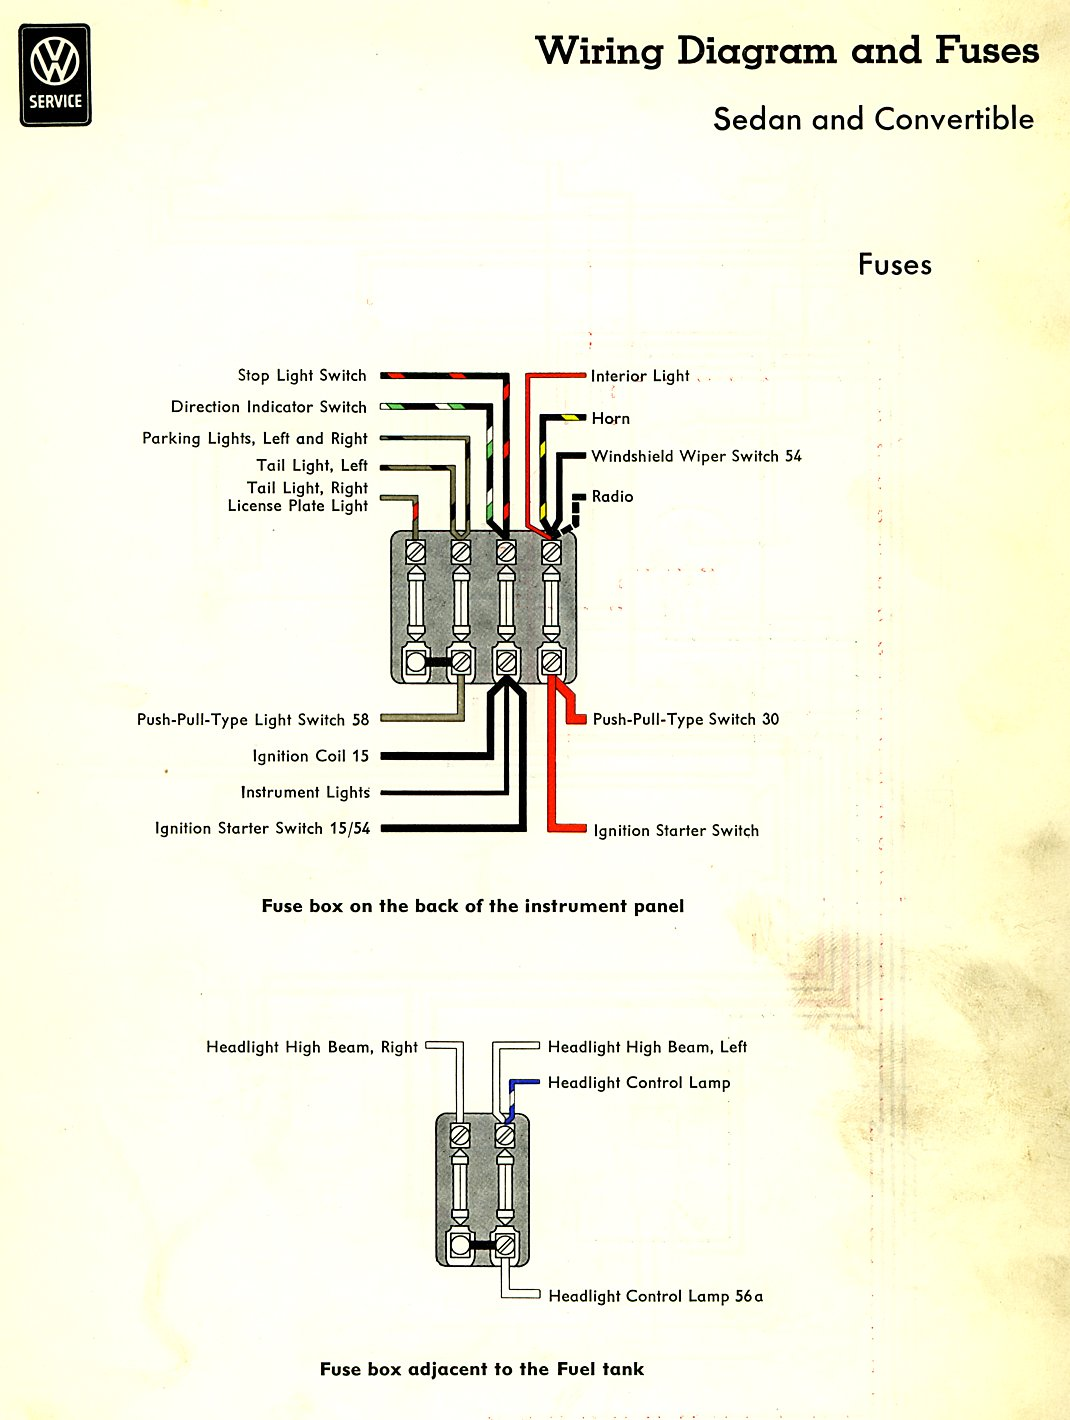 bug_58_fuses 1966 beetle wiring diagram thegoldenbug com 1957 vw beetle wiring diagram at bayanpartner.co